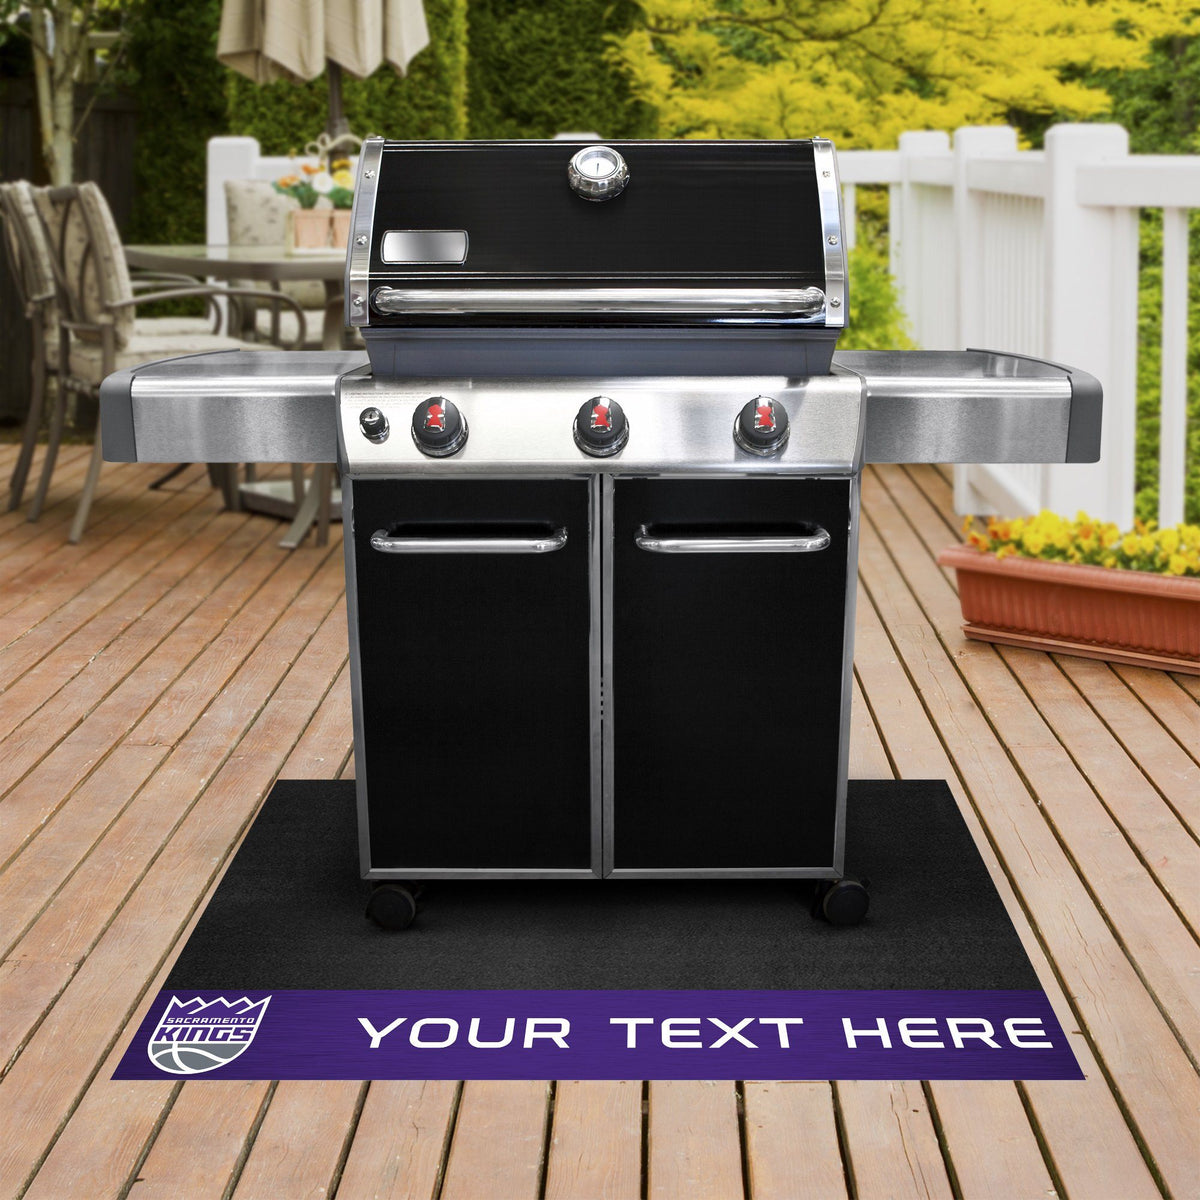 NBA Personalized Grill Mat Personalized Grill Mat Fan Mats Sacramento Kings